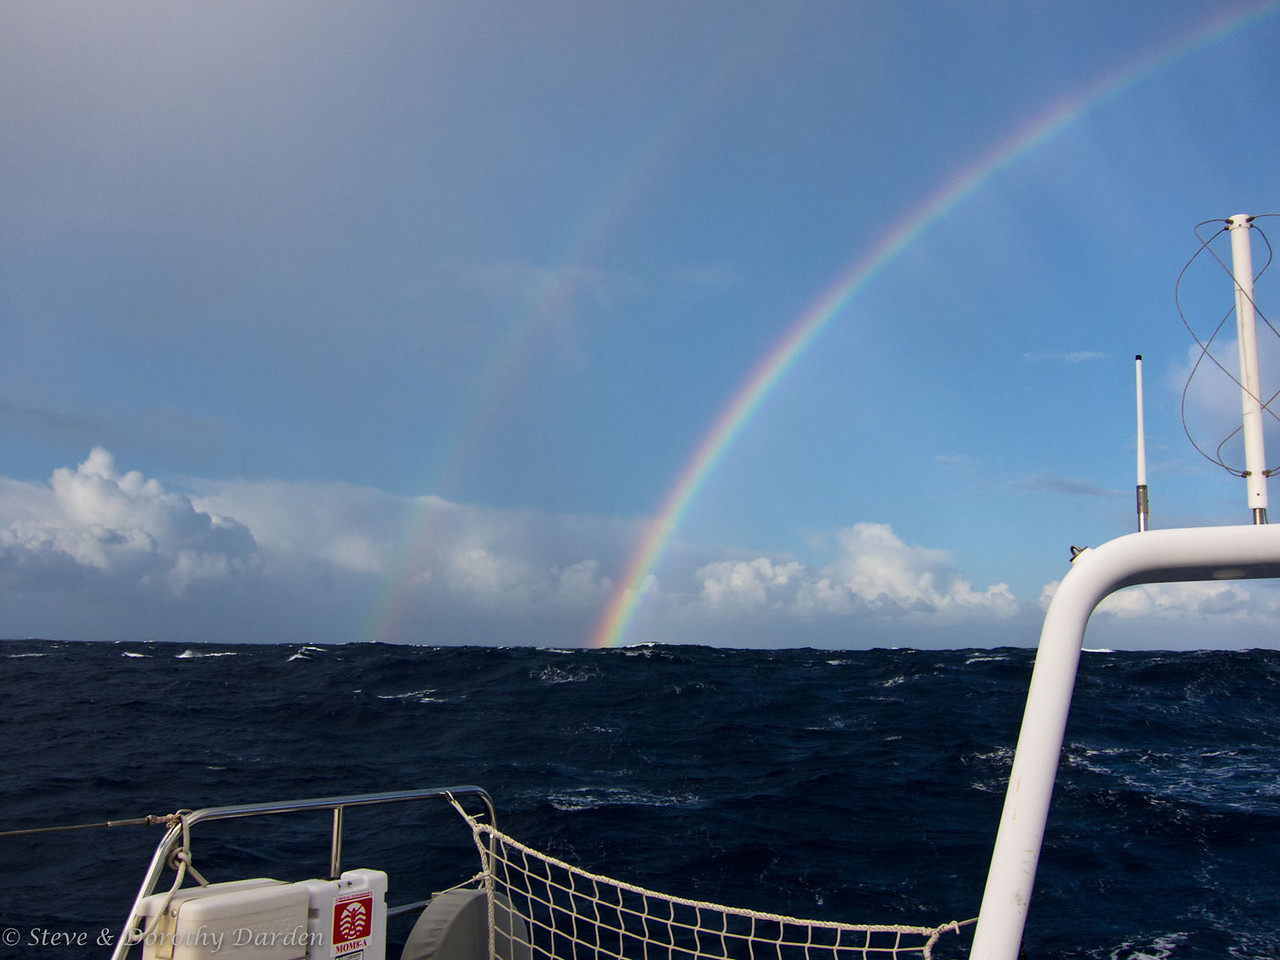 Double rainbow astern